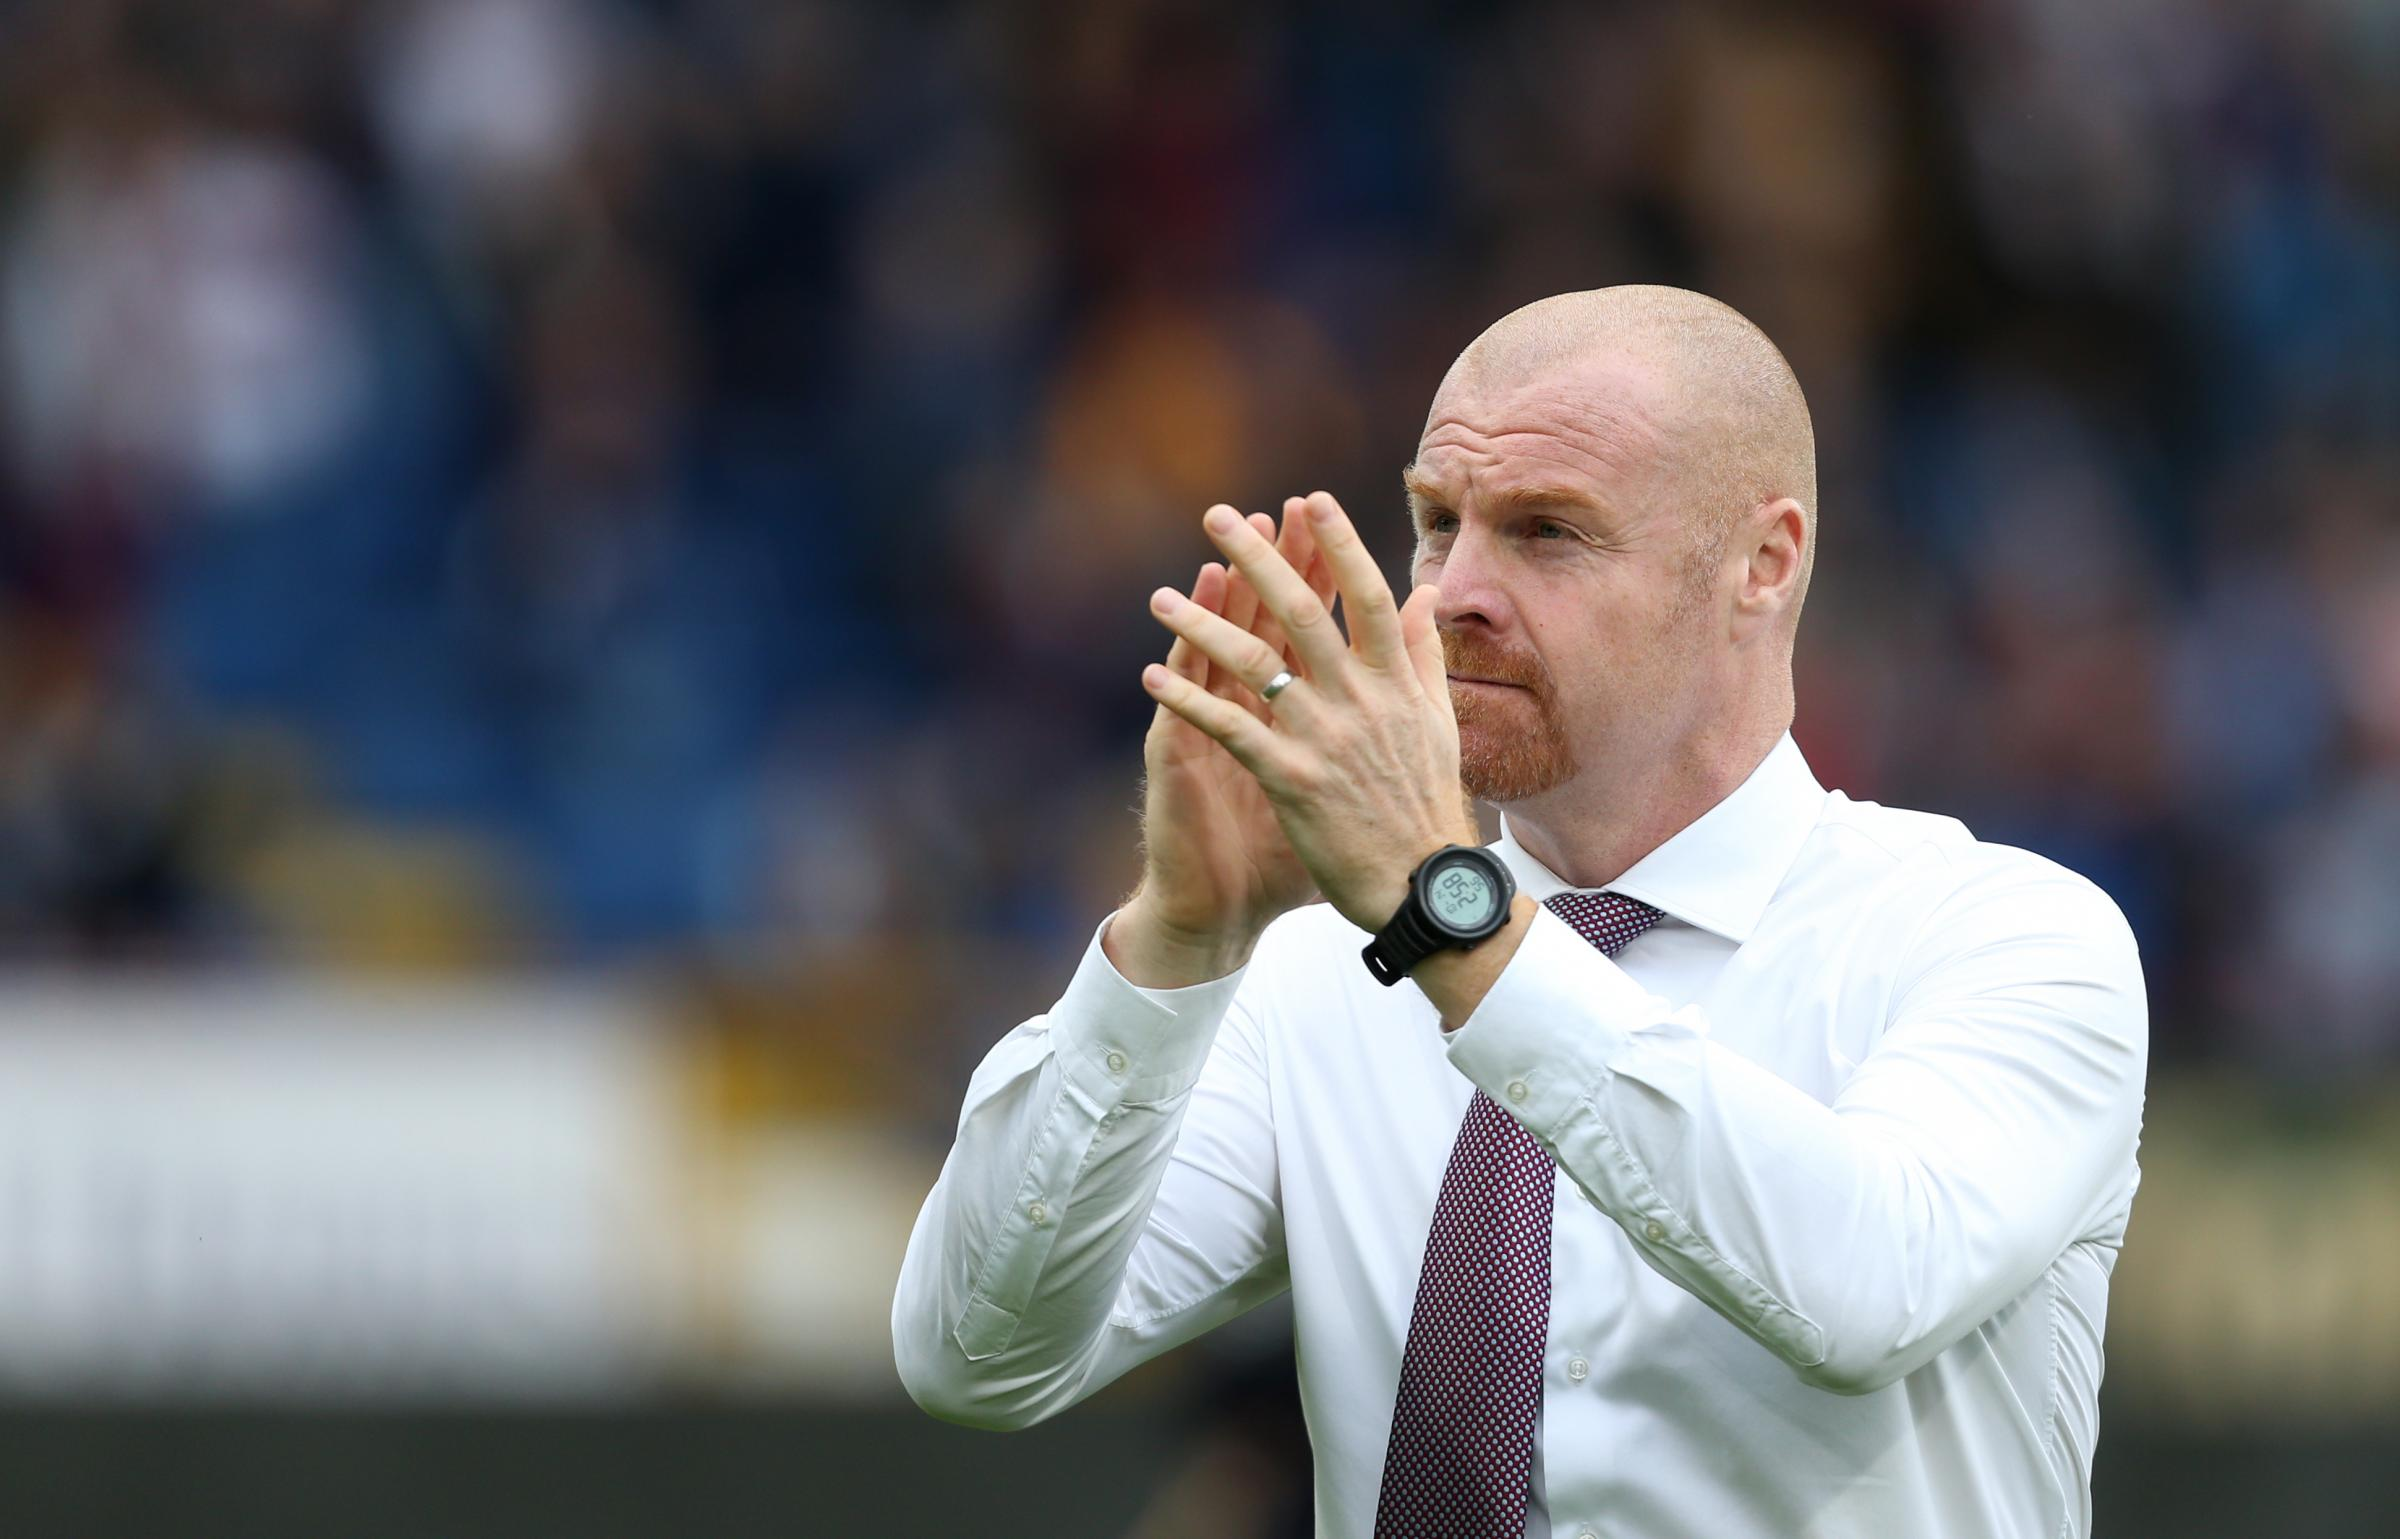 Sean Dyche has been nominated for the Premier League manager of the month award for October